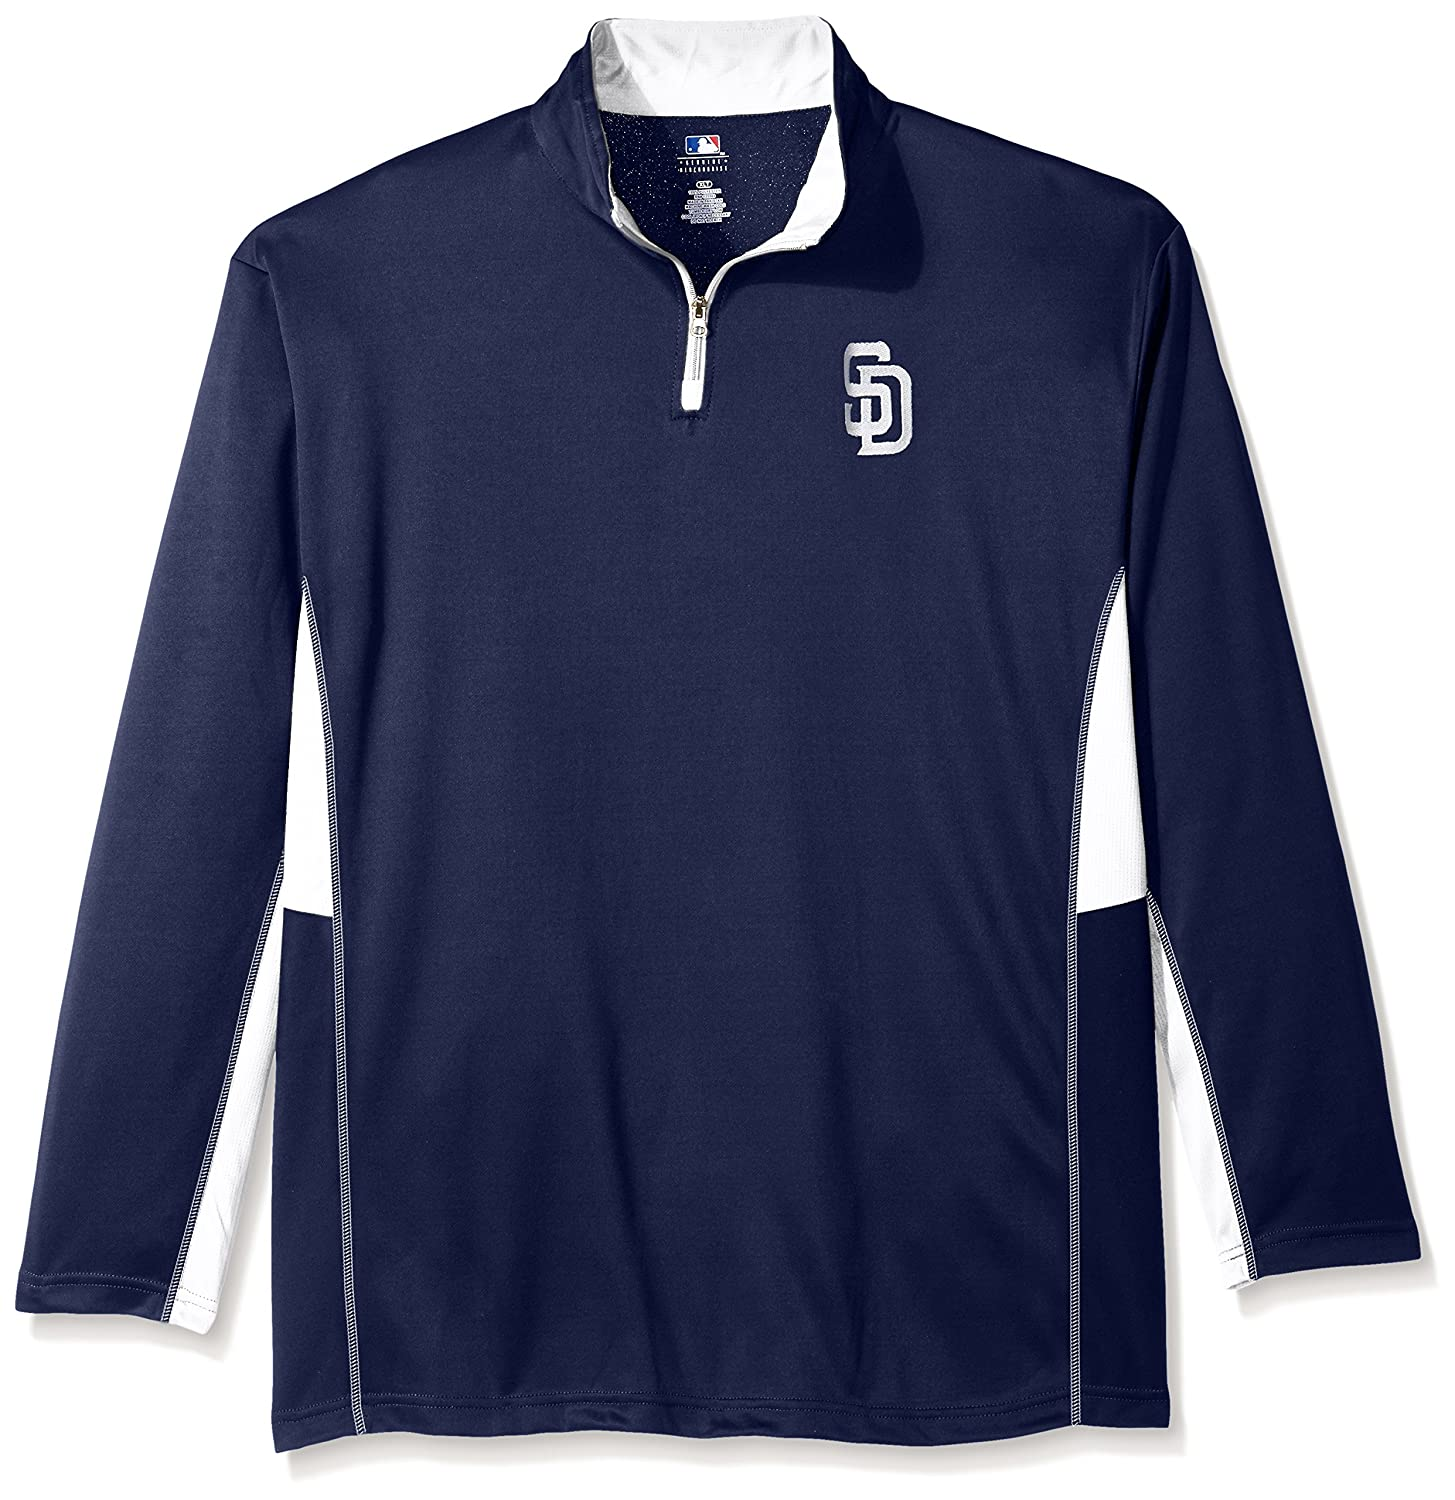 brand new 159a0 9c117 MLB San Diego Padres Men's Long Sleeved Quarter Zip Poly ...